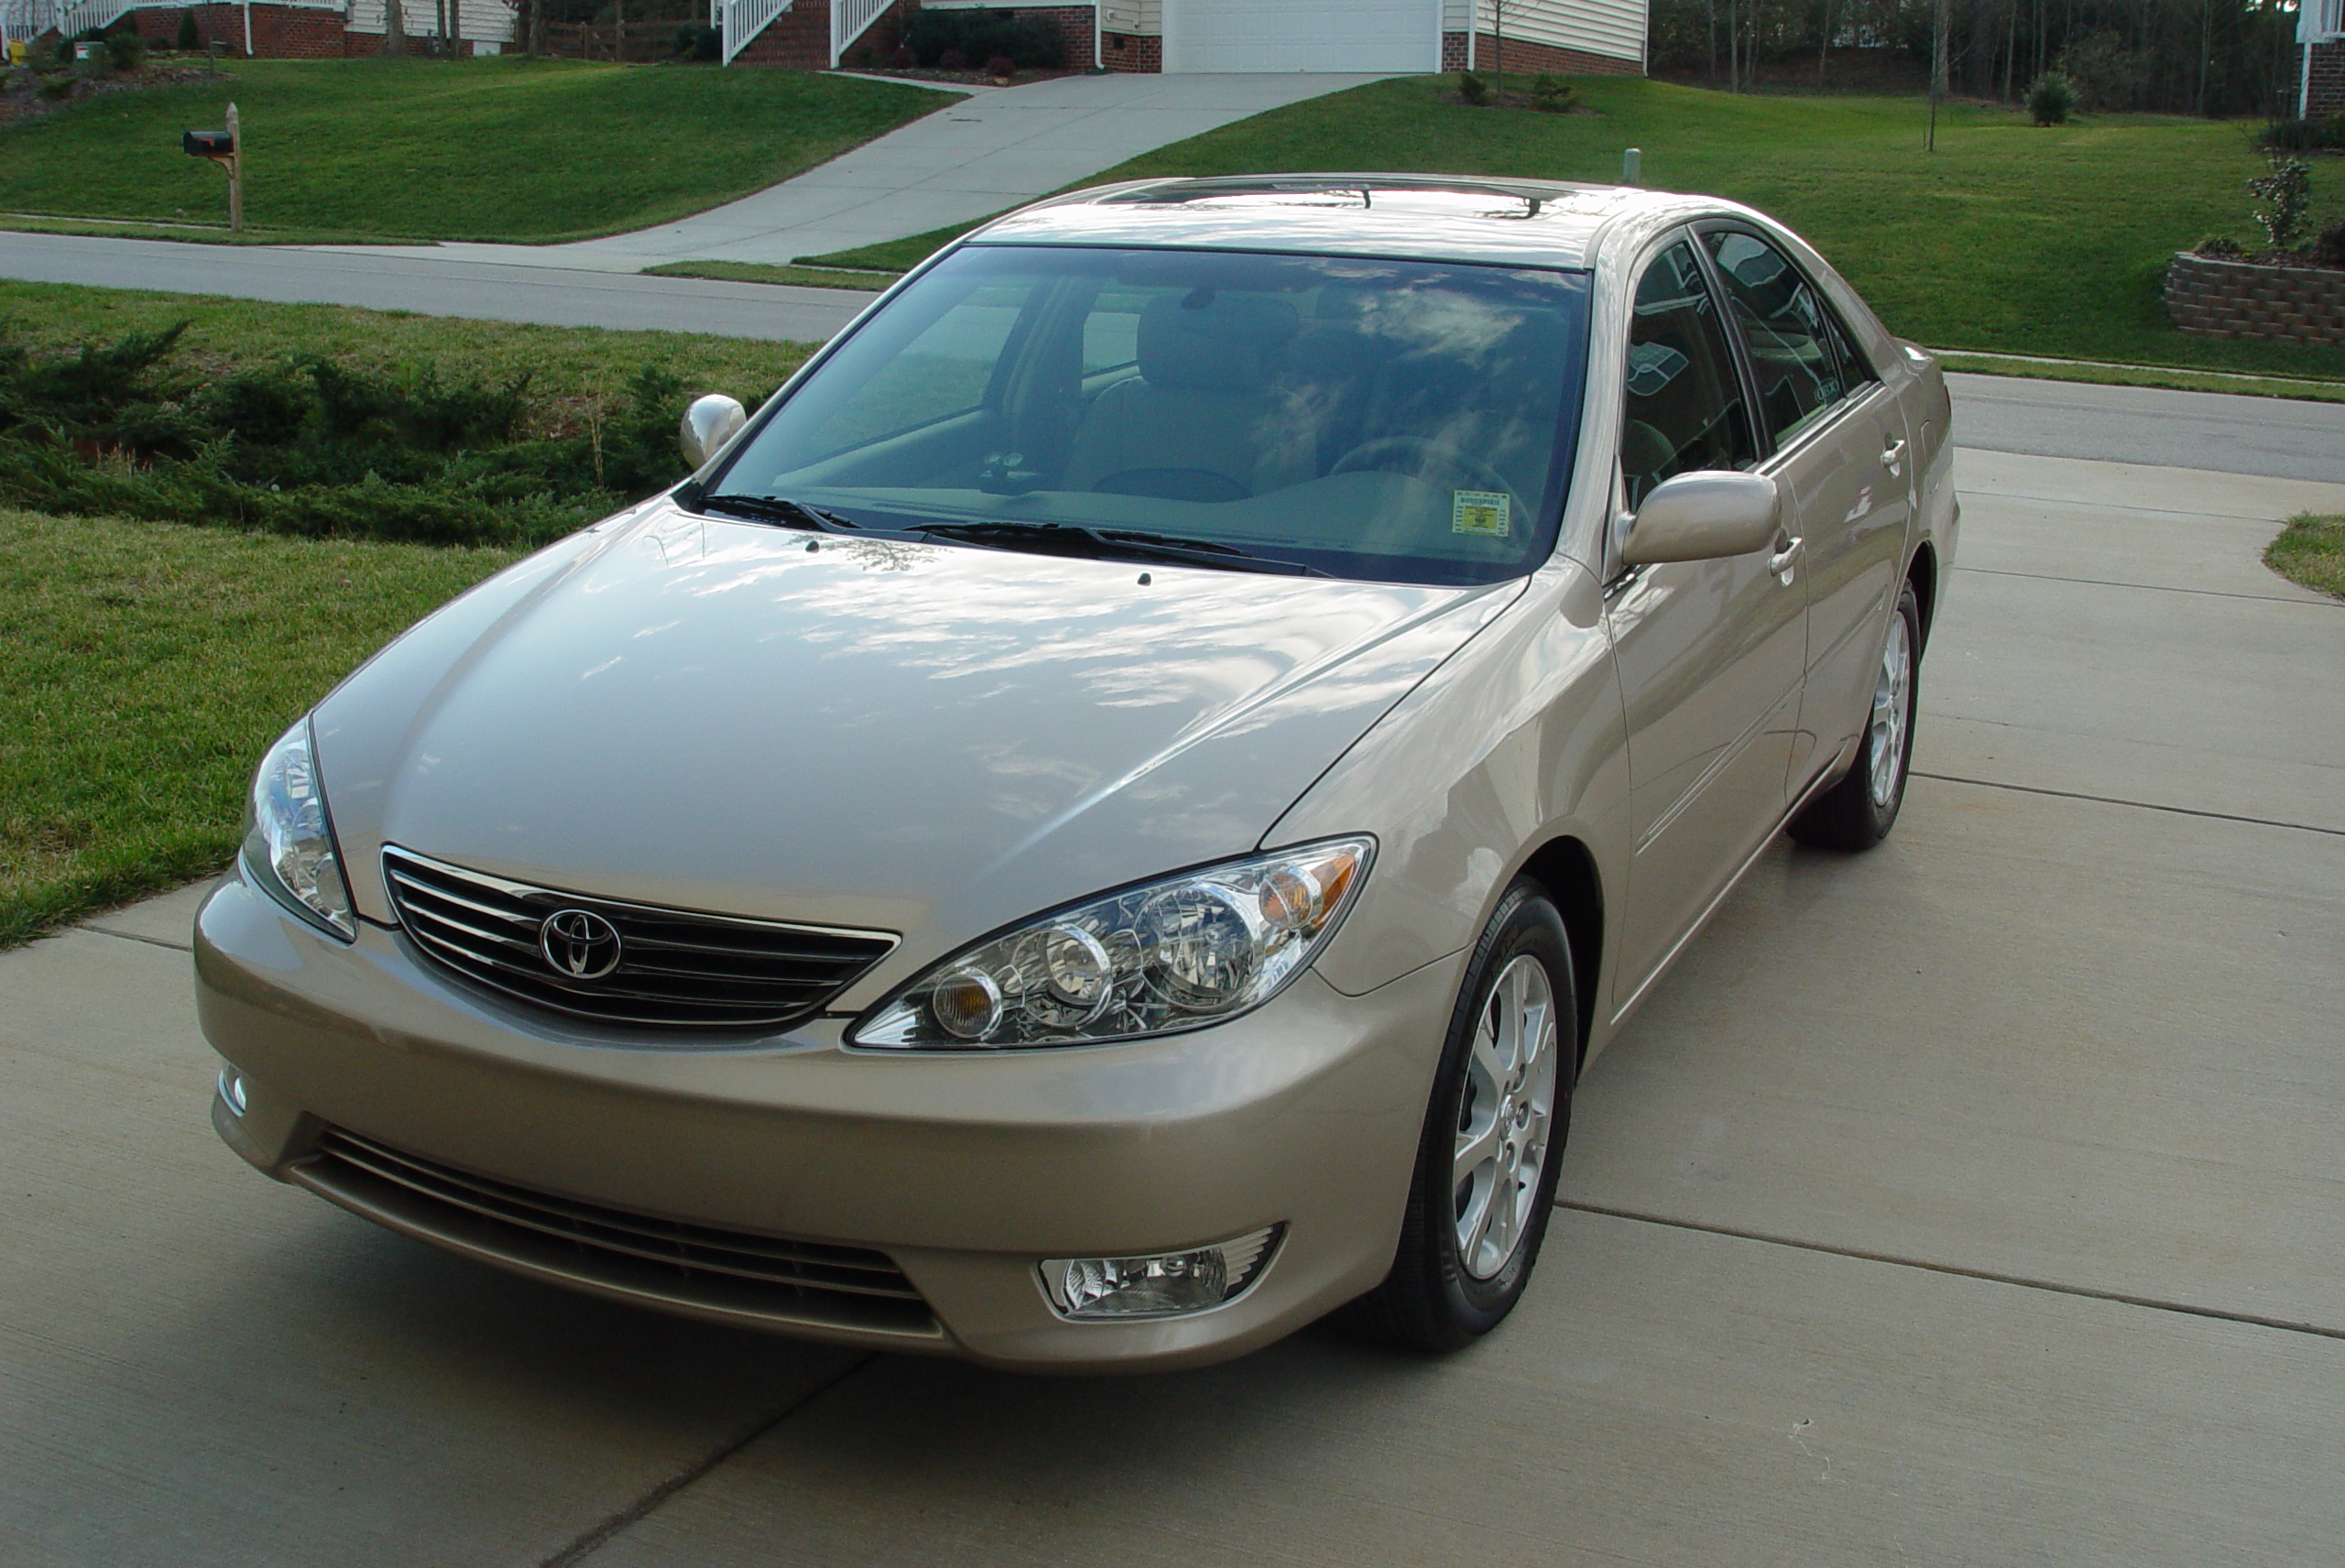 2002 toyota camry v pictures information and specs auto. Black Bedroom Furniture Sets. Home Design Ideas